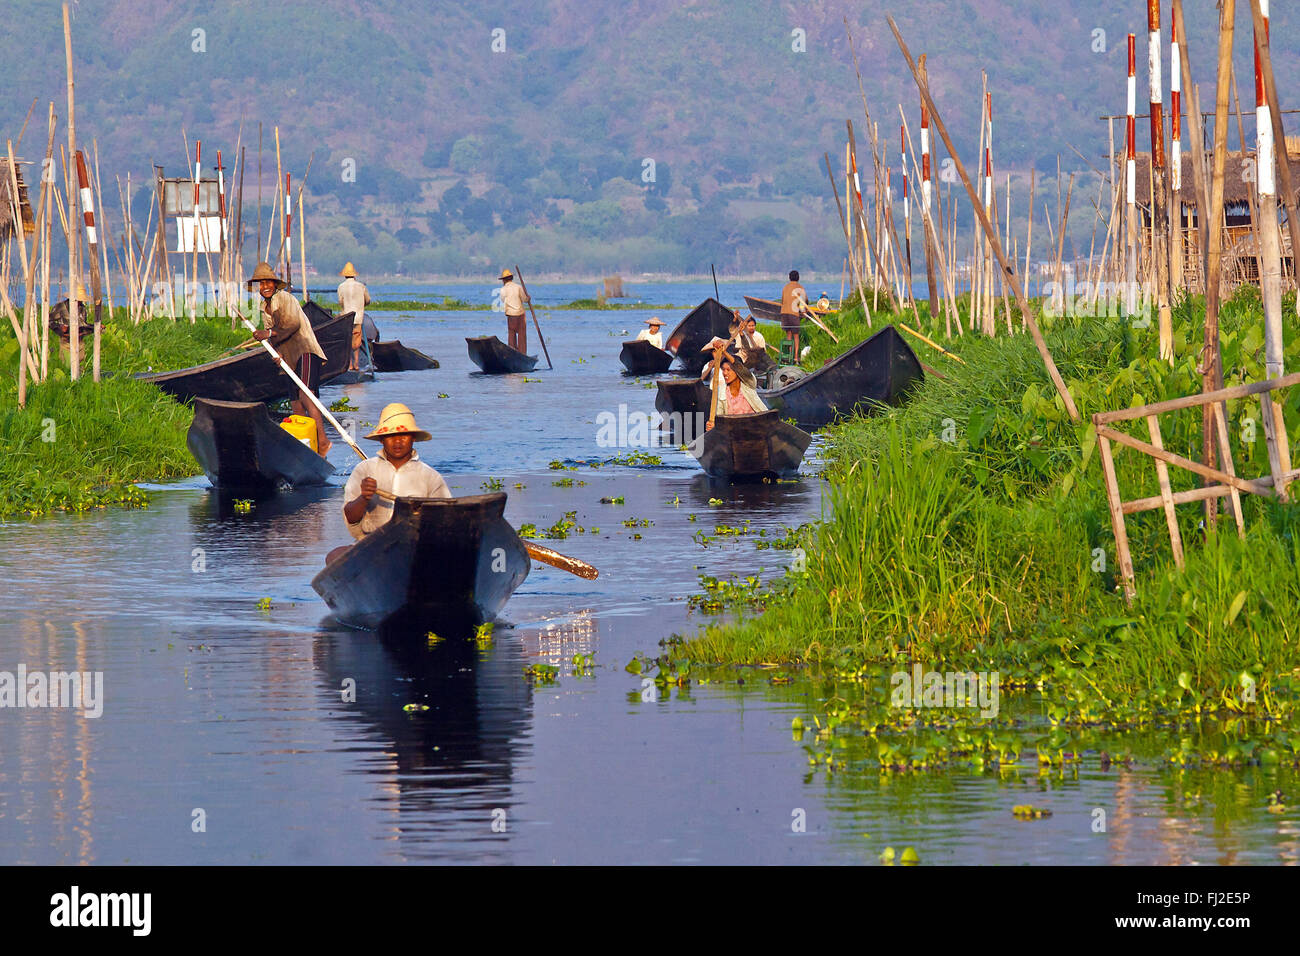 Hand made WOODEN BOATS are the main form of transportation on INLE LAKE - MYANMAR - Stock Image